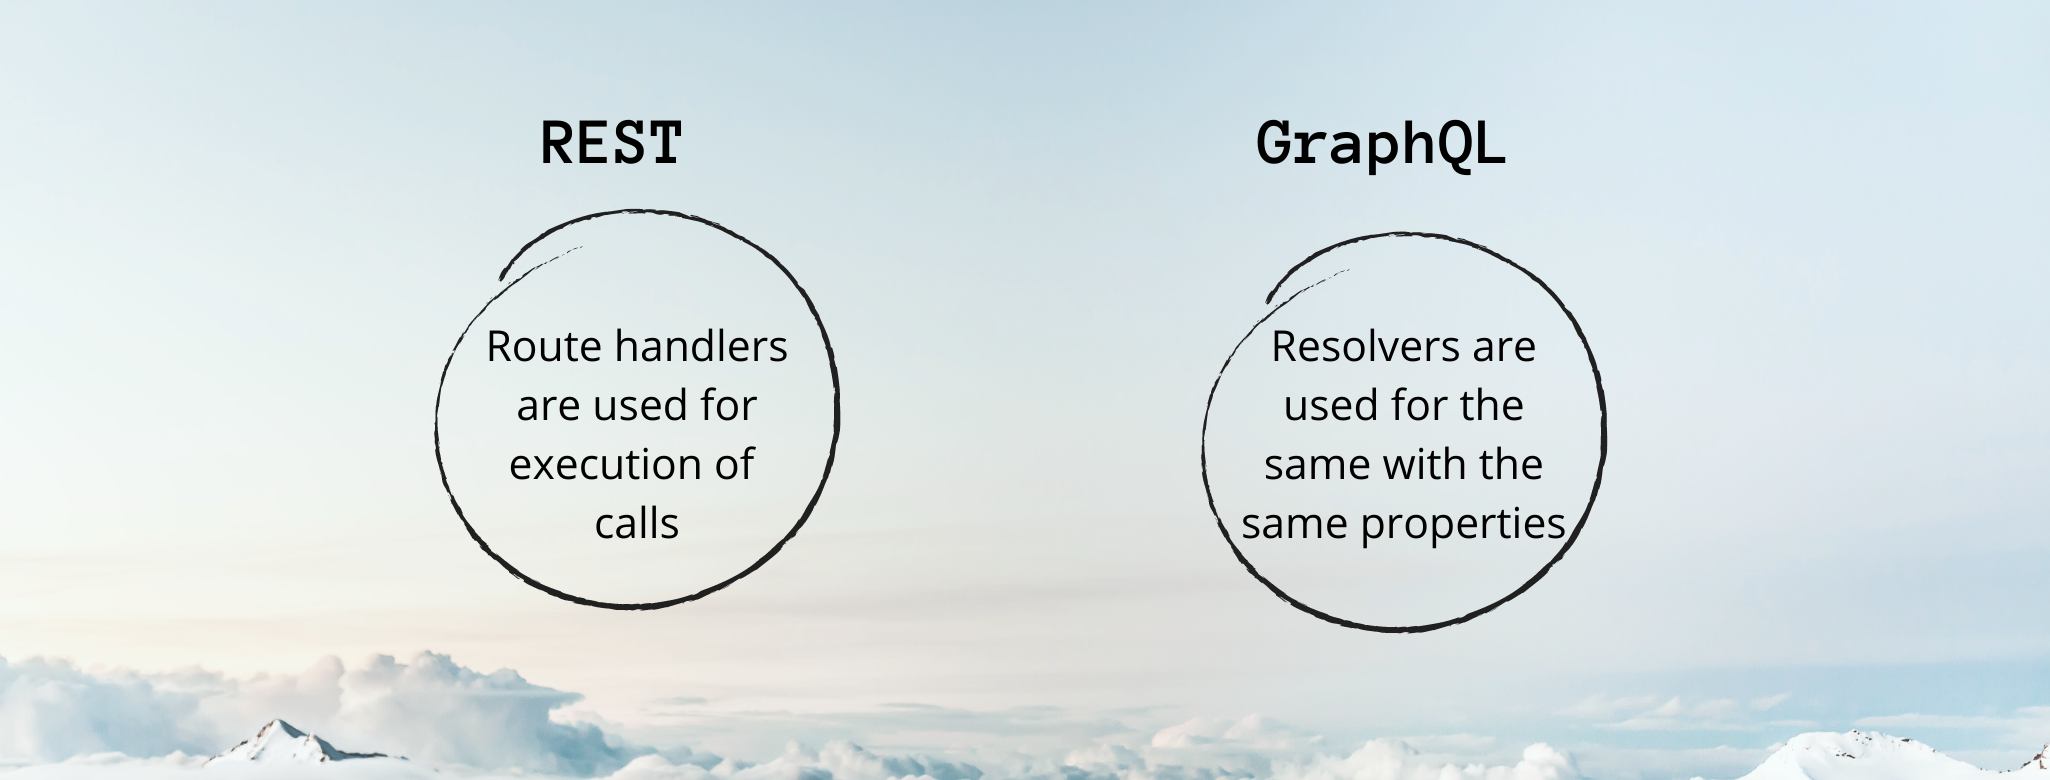 The distinction between REST and GraphQL is shown with regards to code execution.